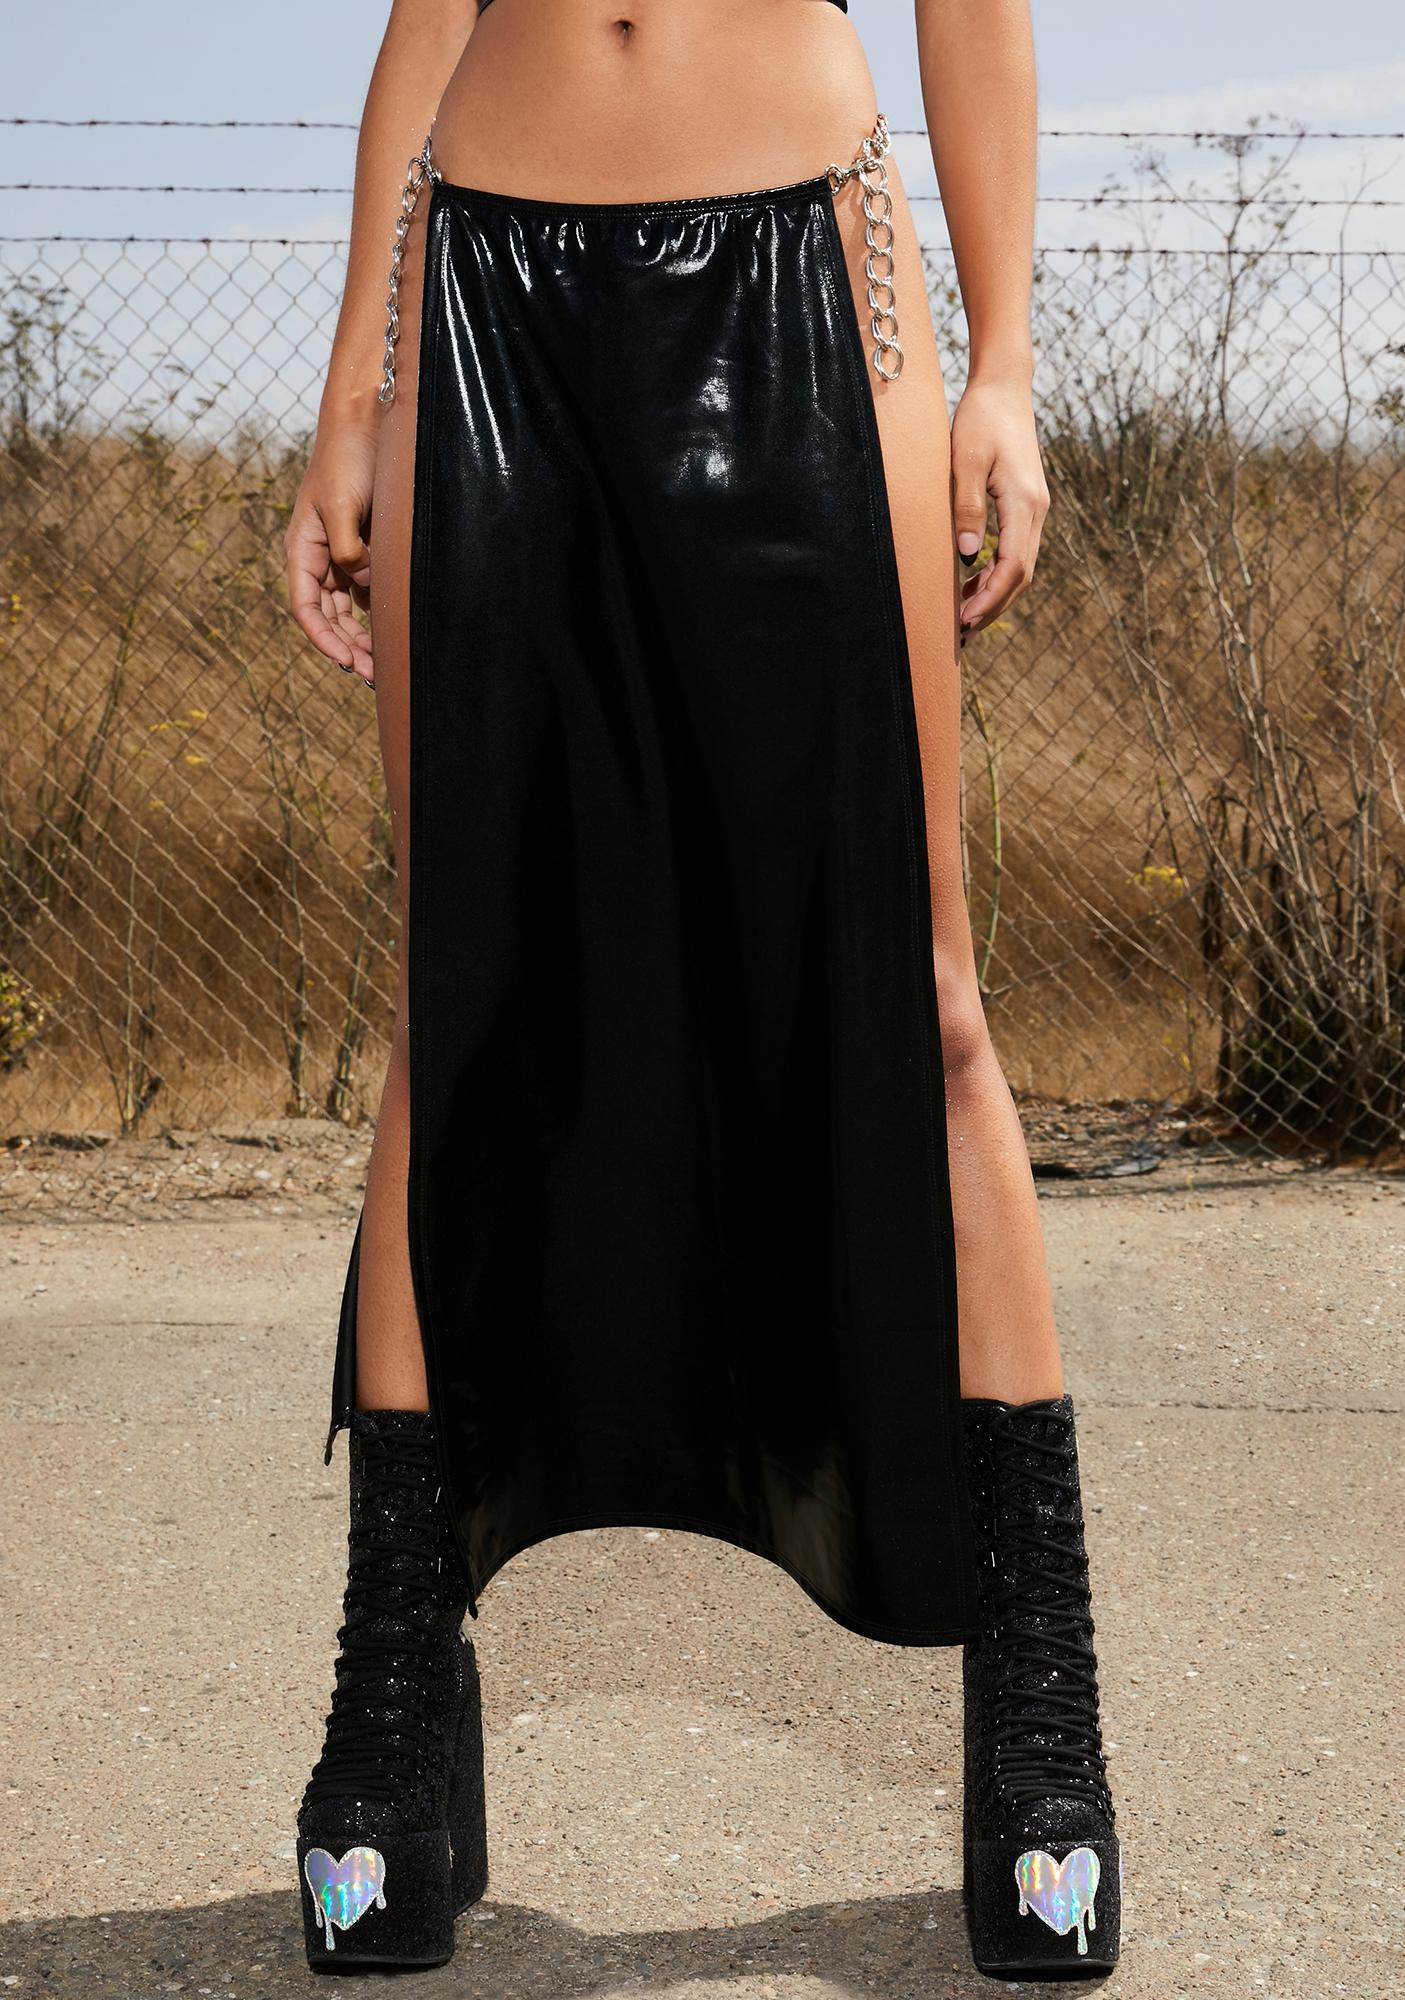 Club Exx Wrapped In Moonlight Chain Maxi Skirt